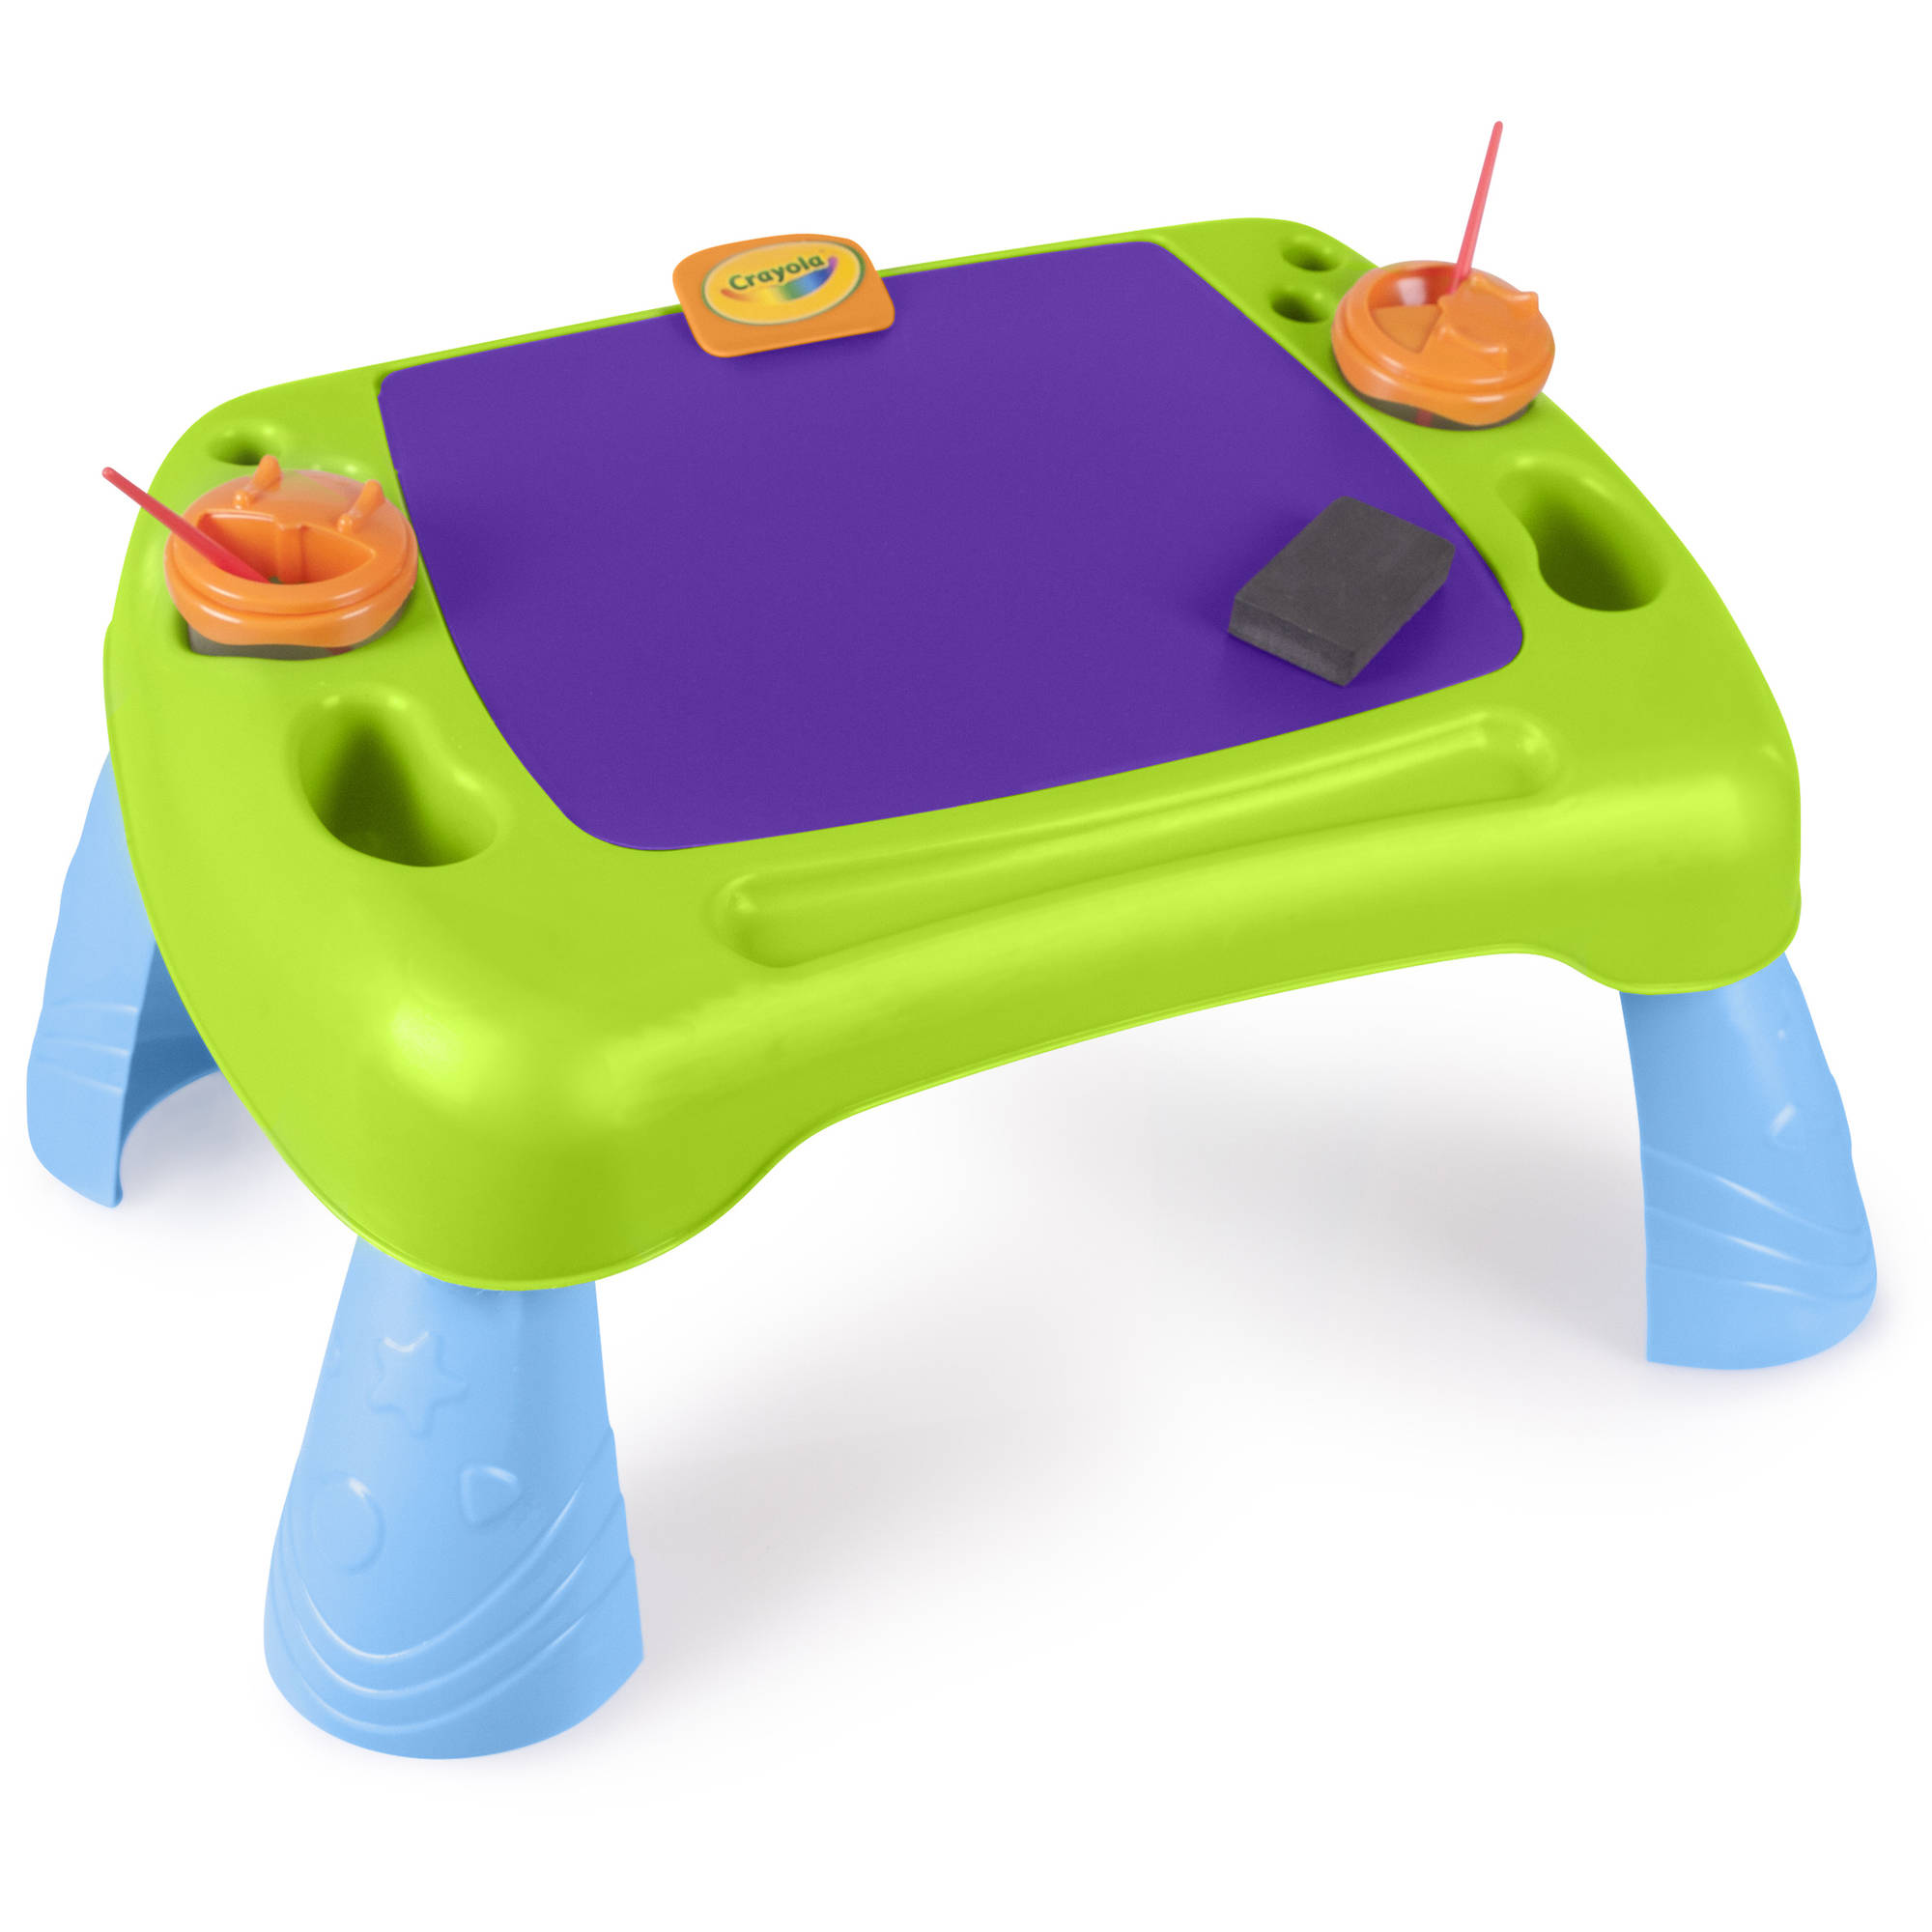 Generic Crayola Paint N Draw Activity Table